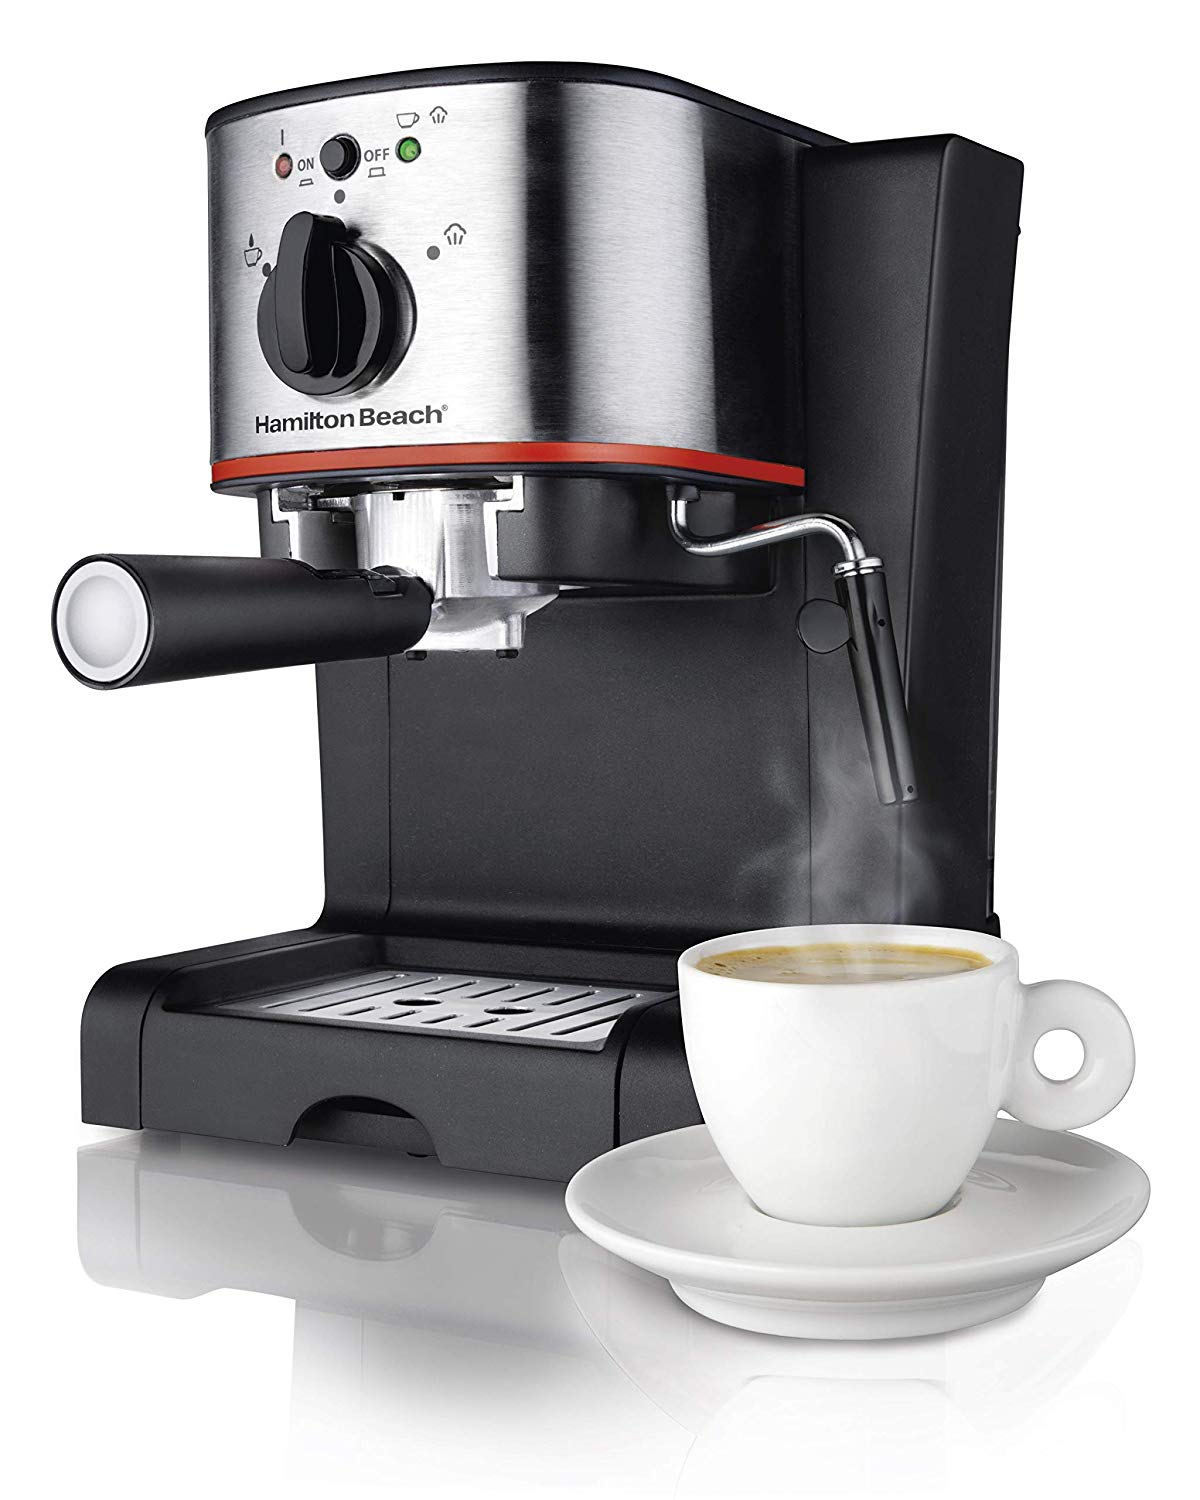 Hamilton Beach Espresso, Latte and Cappuccino Machine with Milk Frother